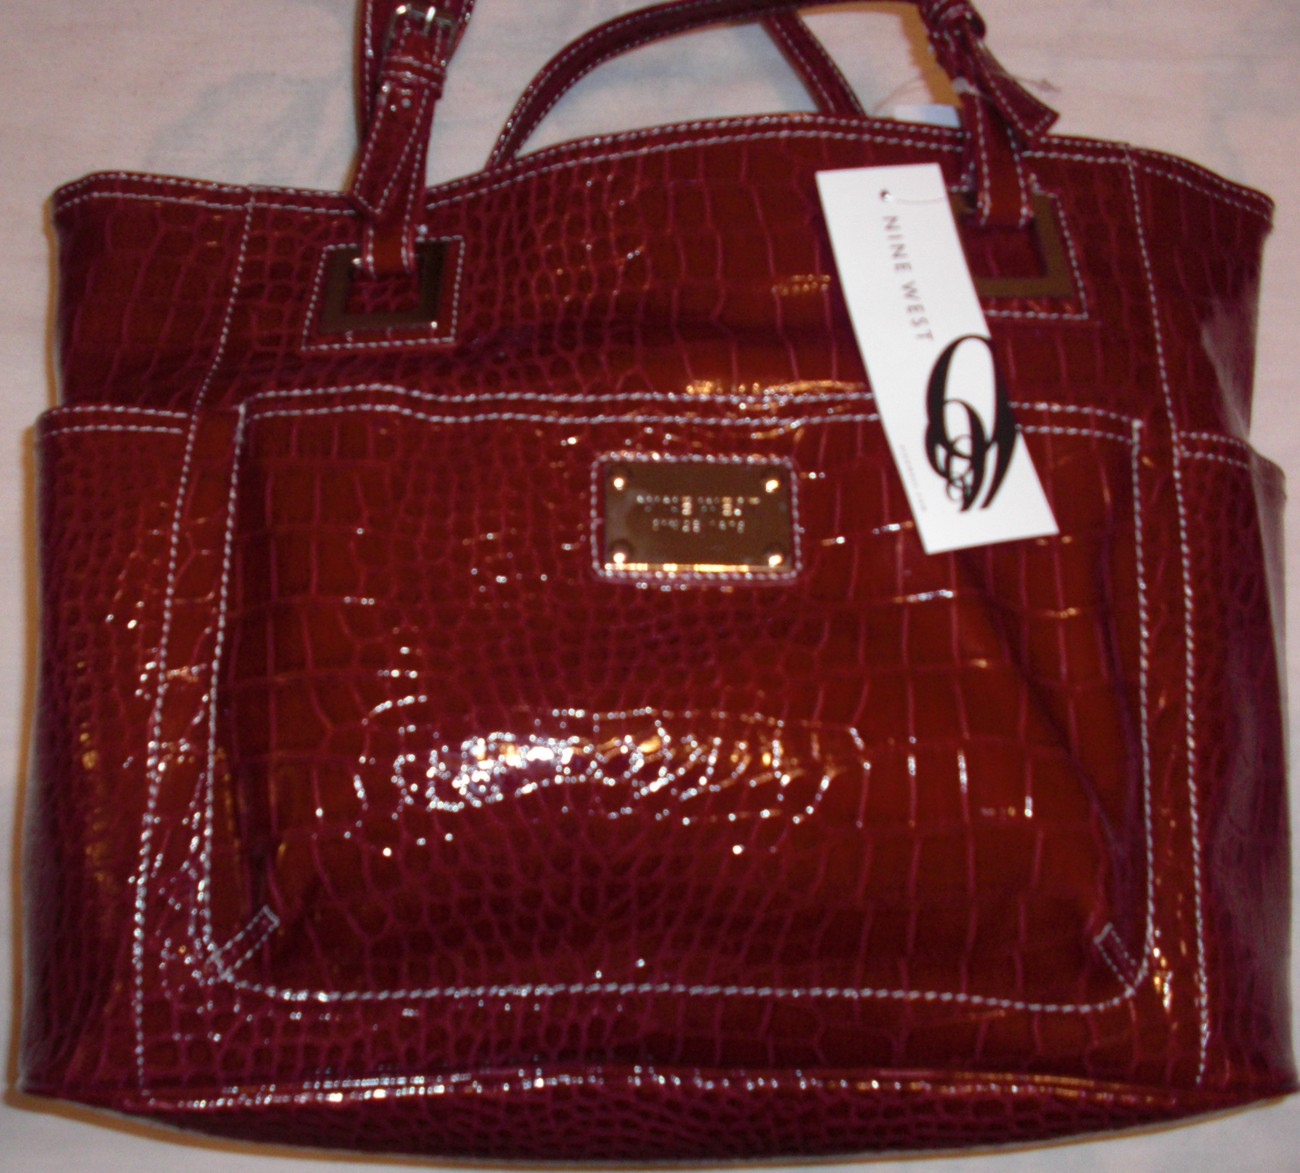 NINE WEST HERITAGE TOTE LARGE NWT